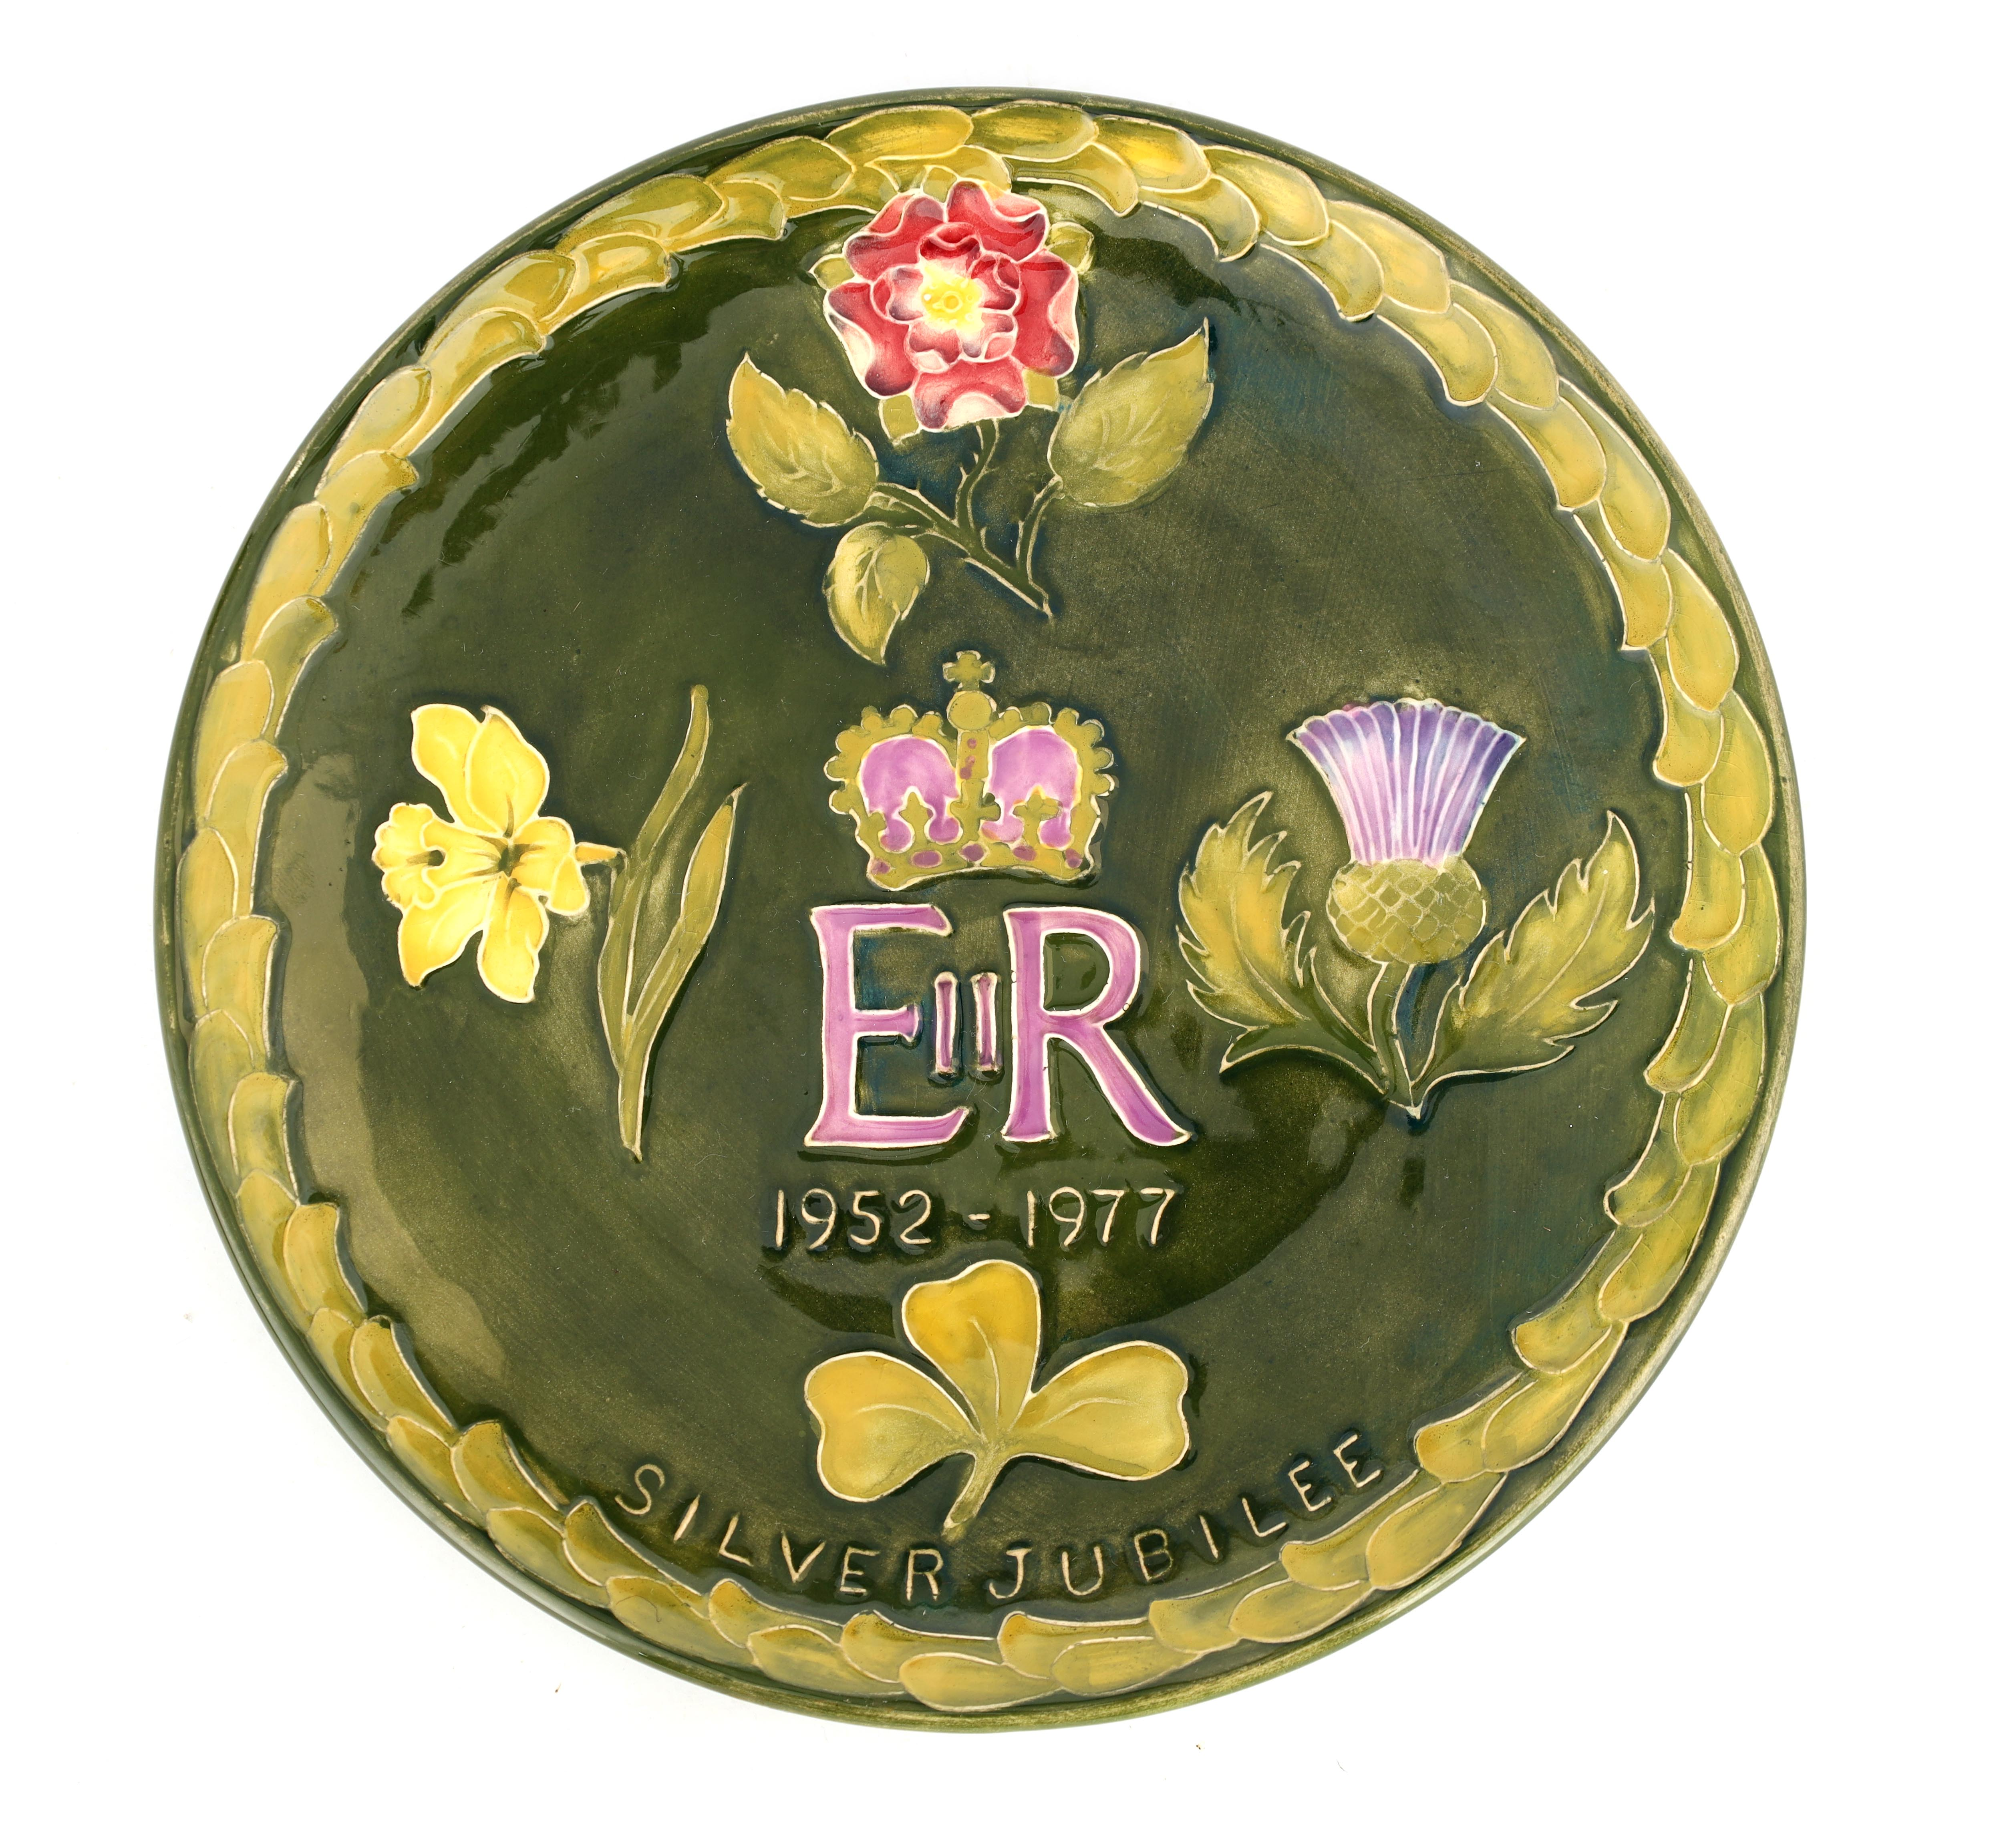 A MOORCROFT 1952-1977 ERII SILVER JUBILEE PLATE decorated with the four-country emblems on a